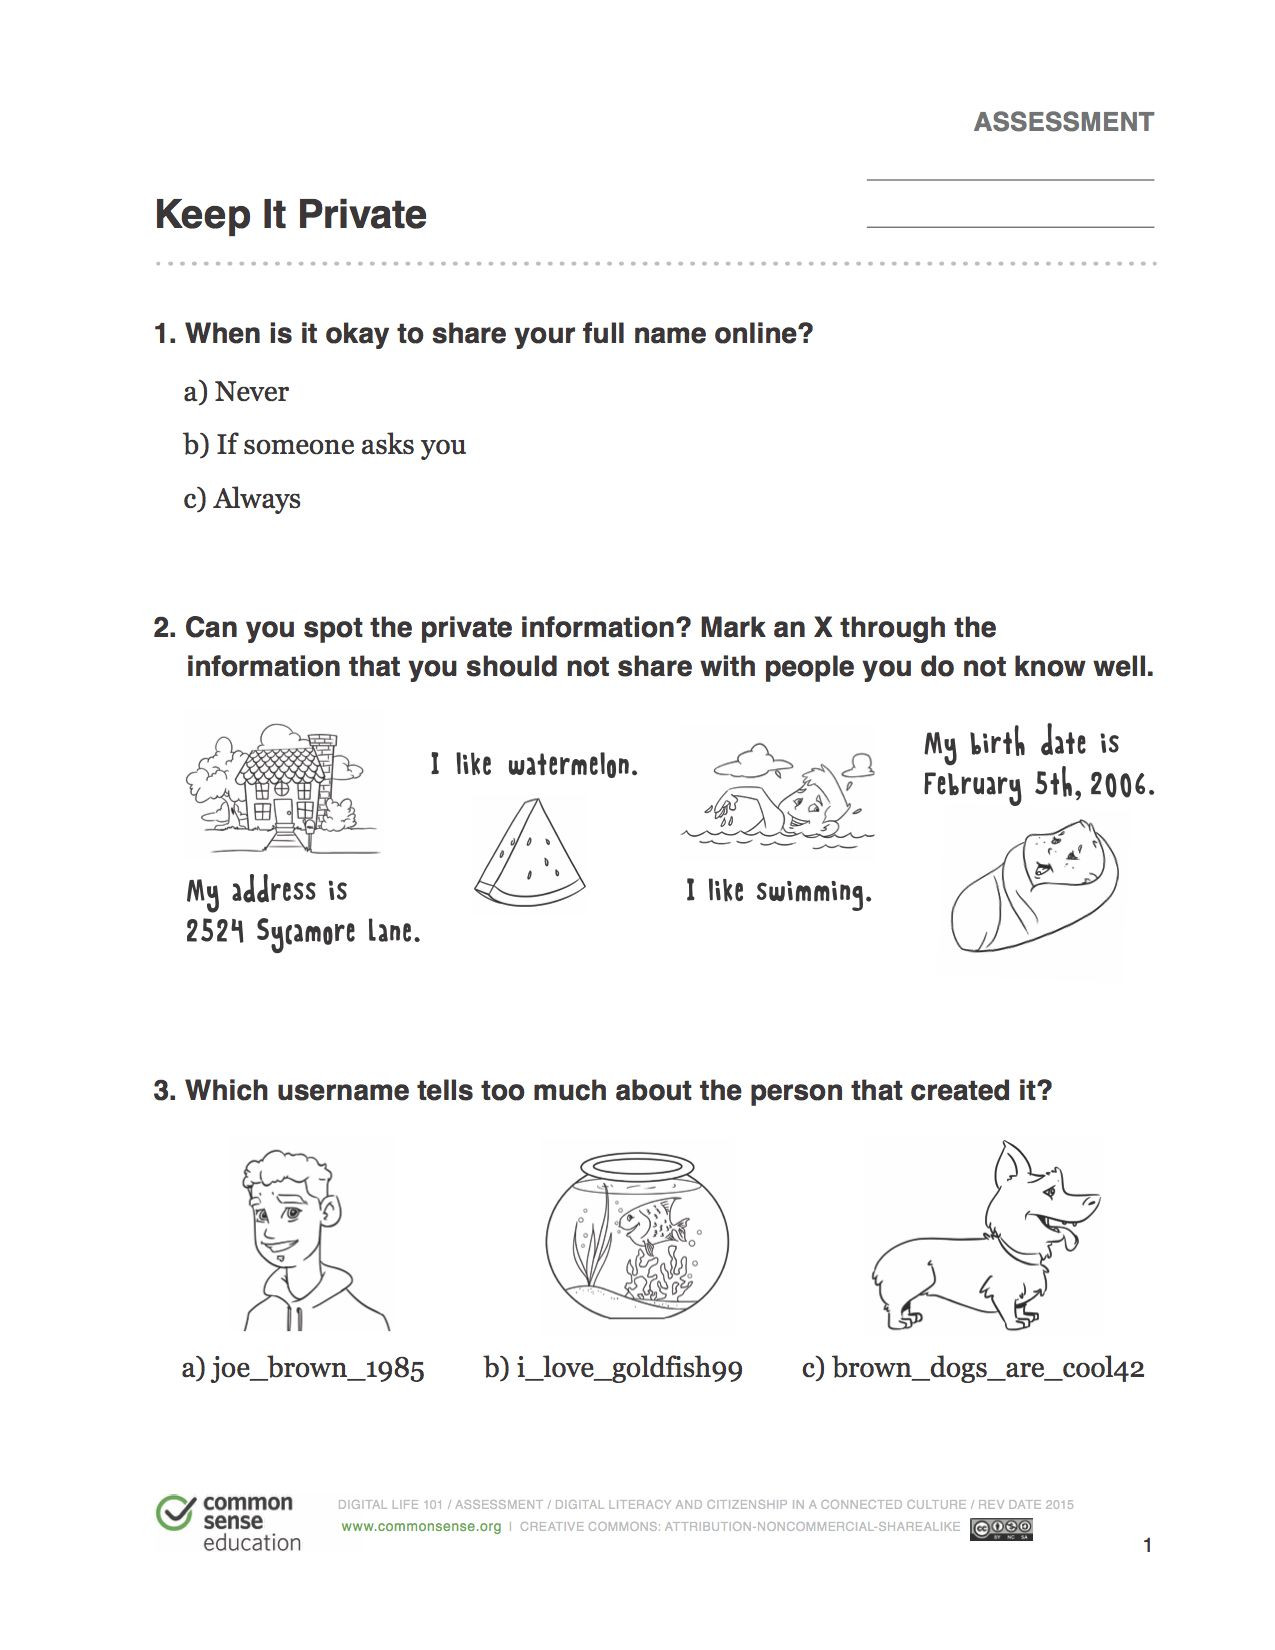 Internet Safety Worksheets Printable Imgur